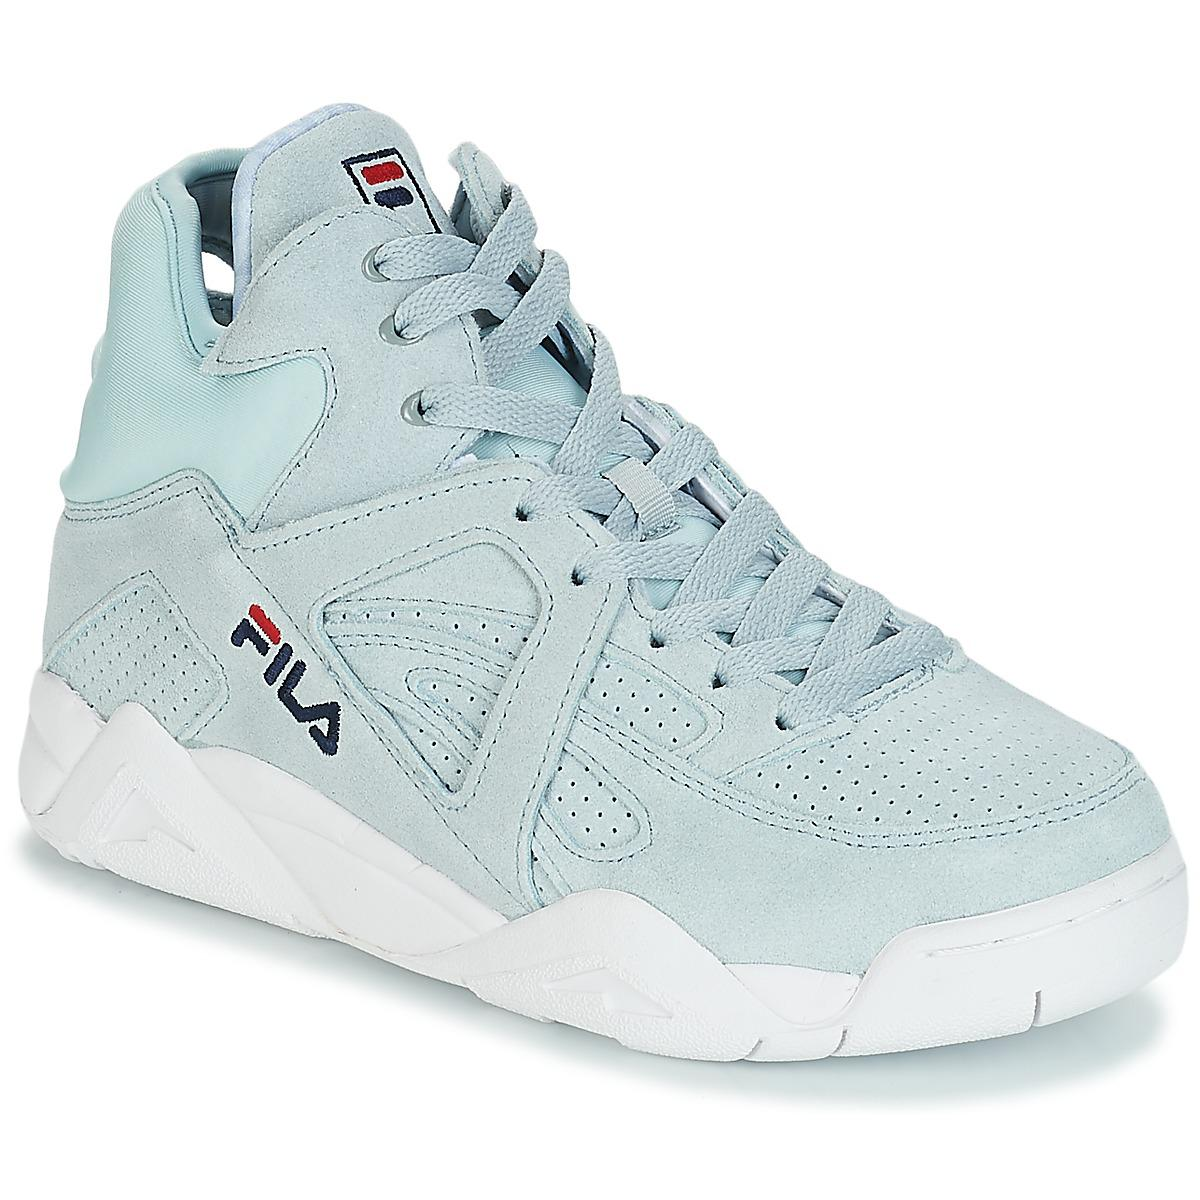 e7980937f99 Fila Cage S Mid Wmn Women's Shoes (trainers) In Blue in Blue - Lyst